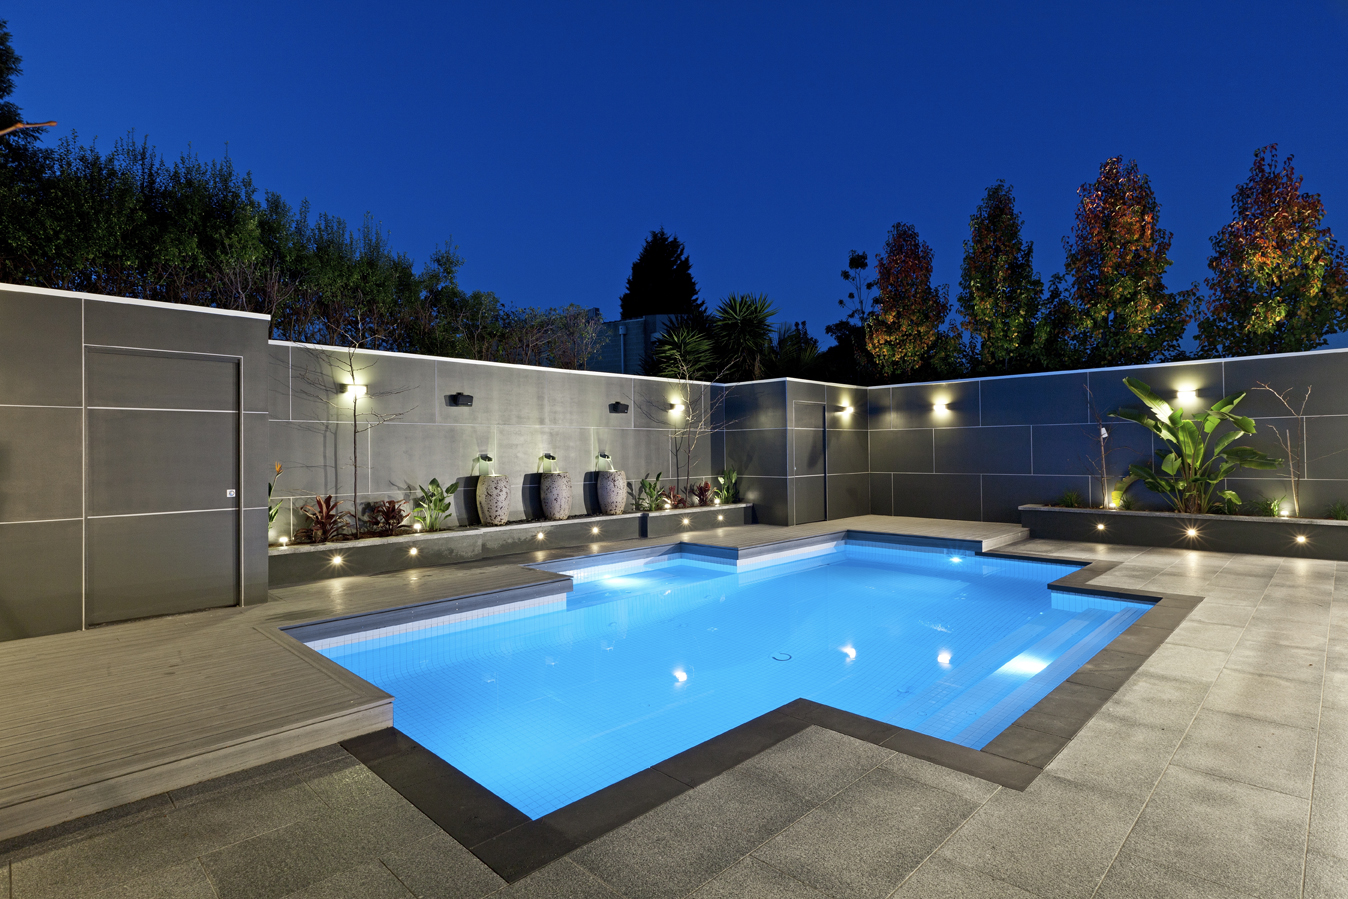 Backyard landscaping ideas swimming pool design for Pool garden design pictures